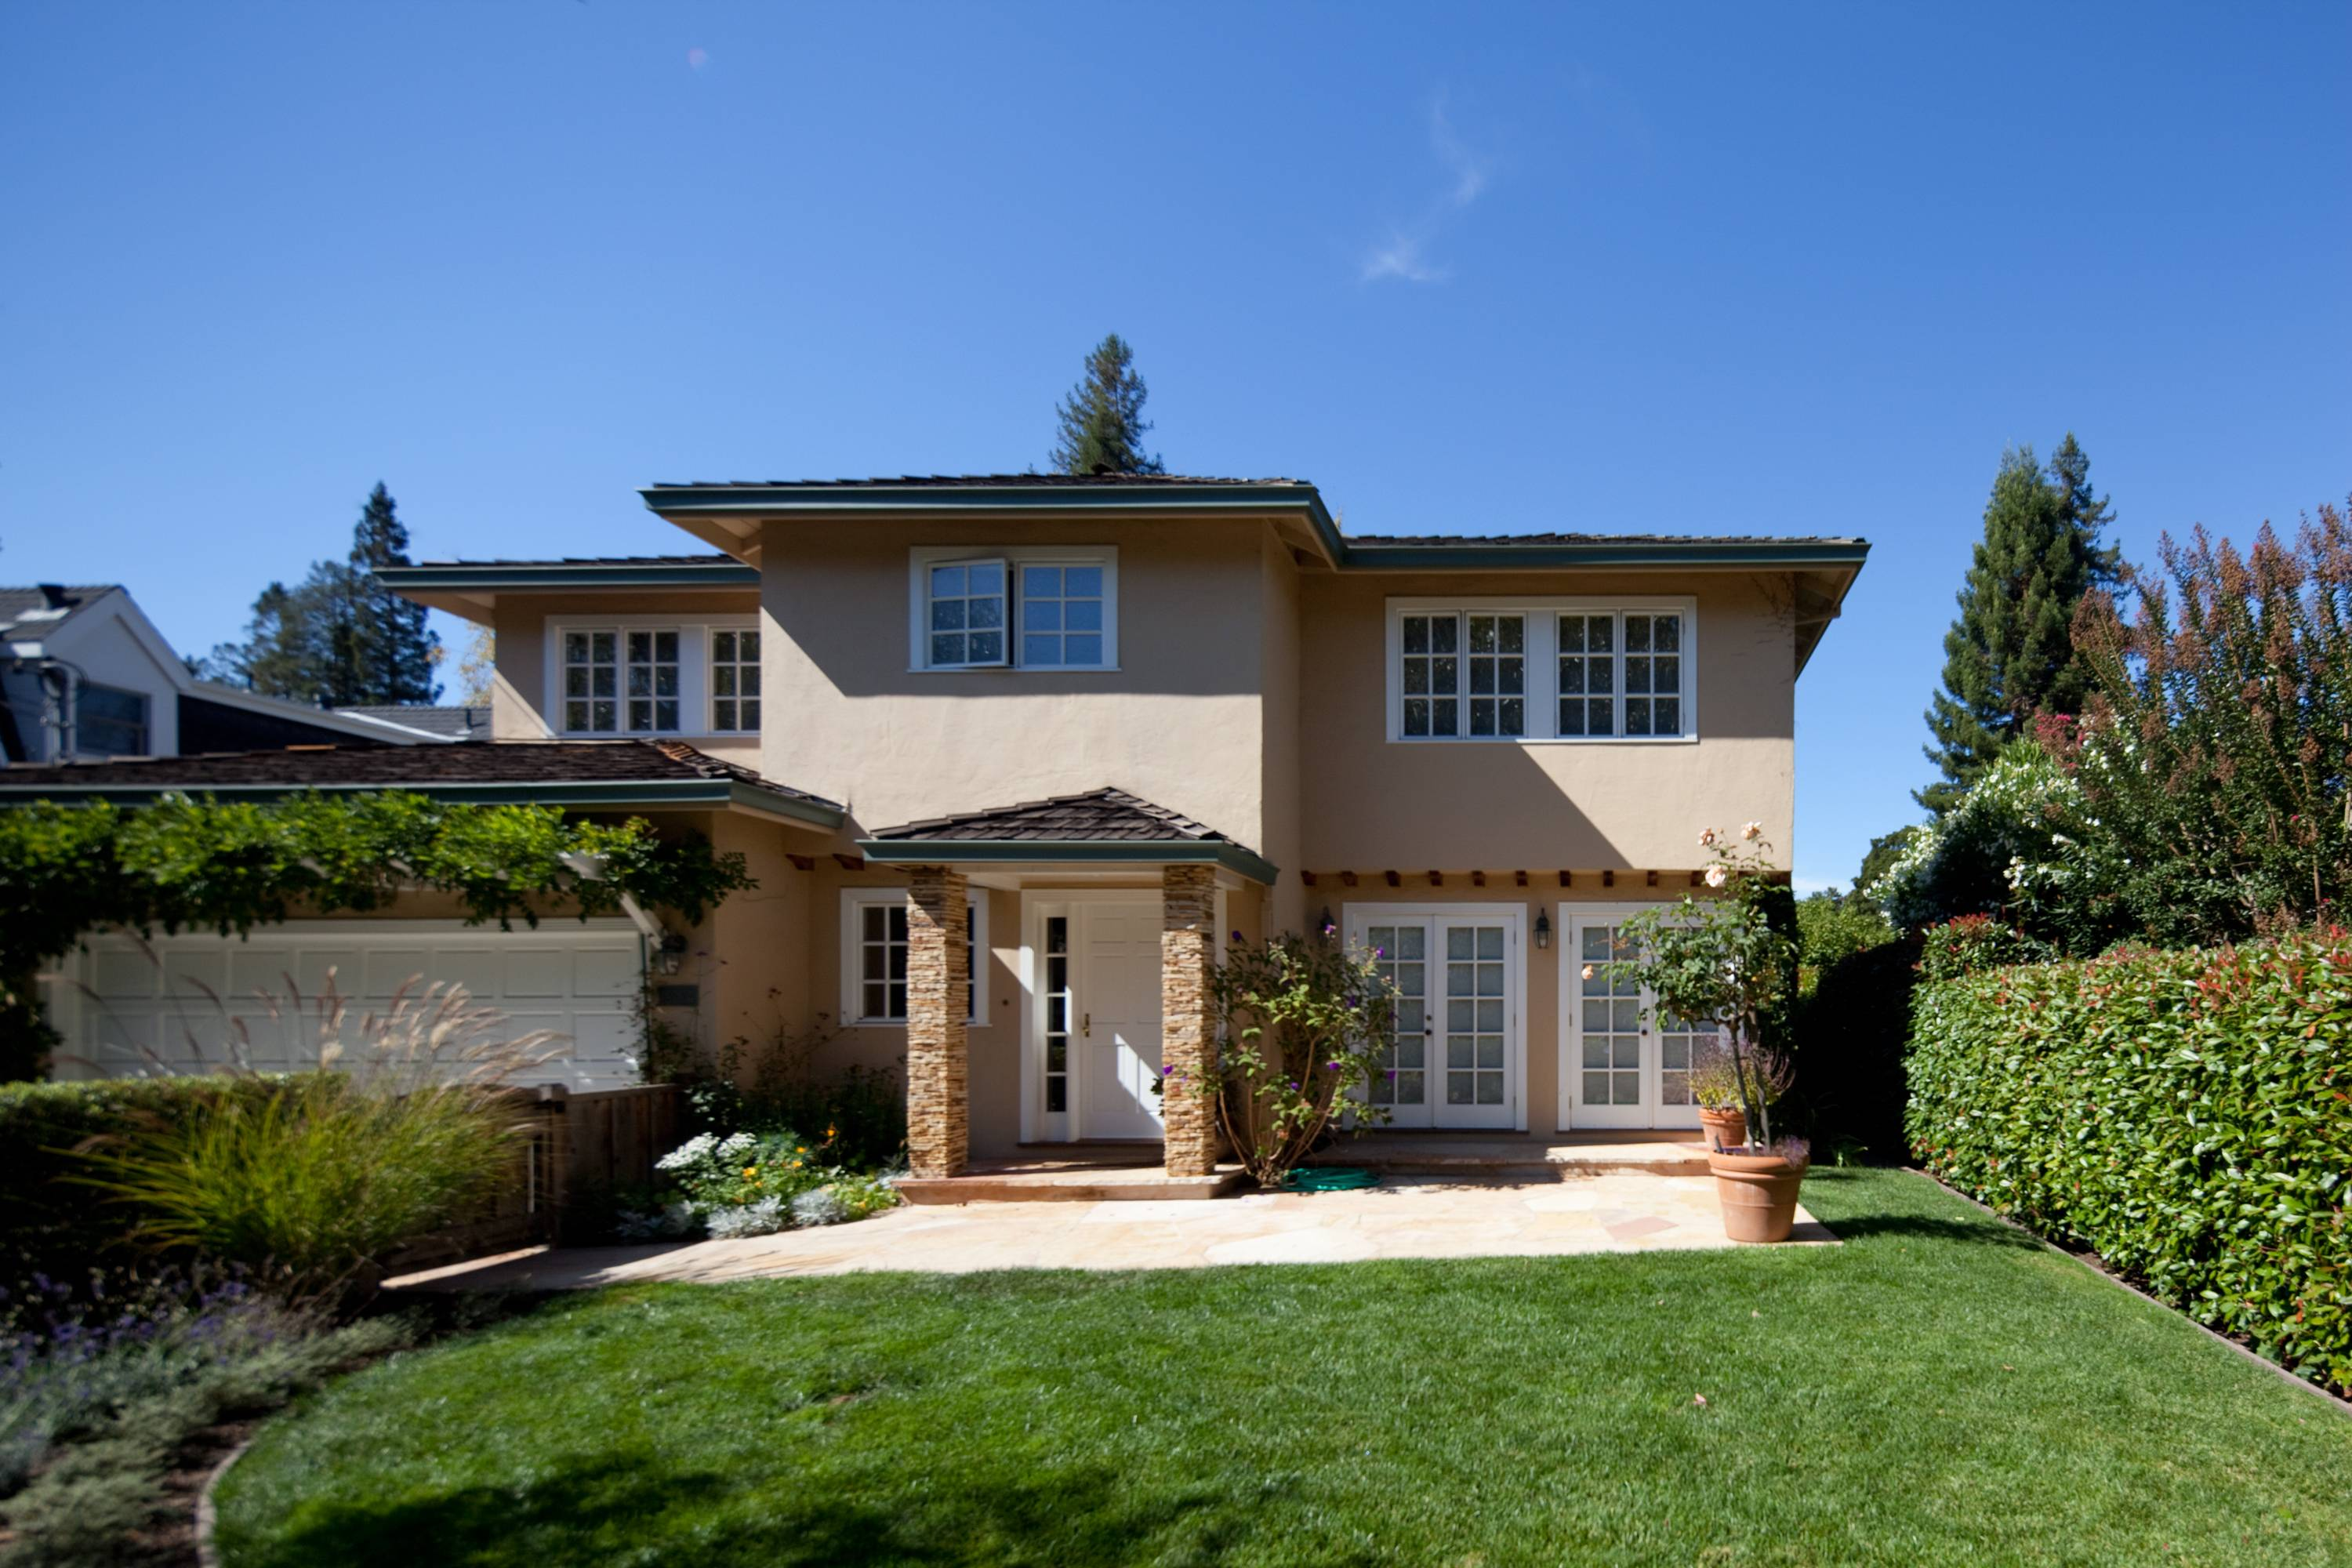 Home Sale Tennyson Ave Palo Alto Real Estate